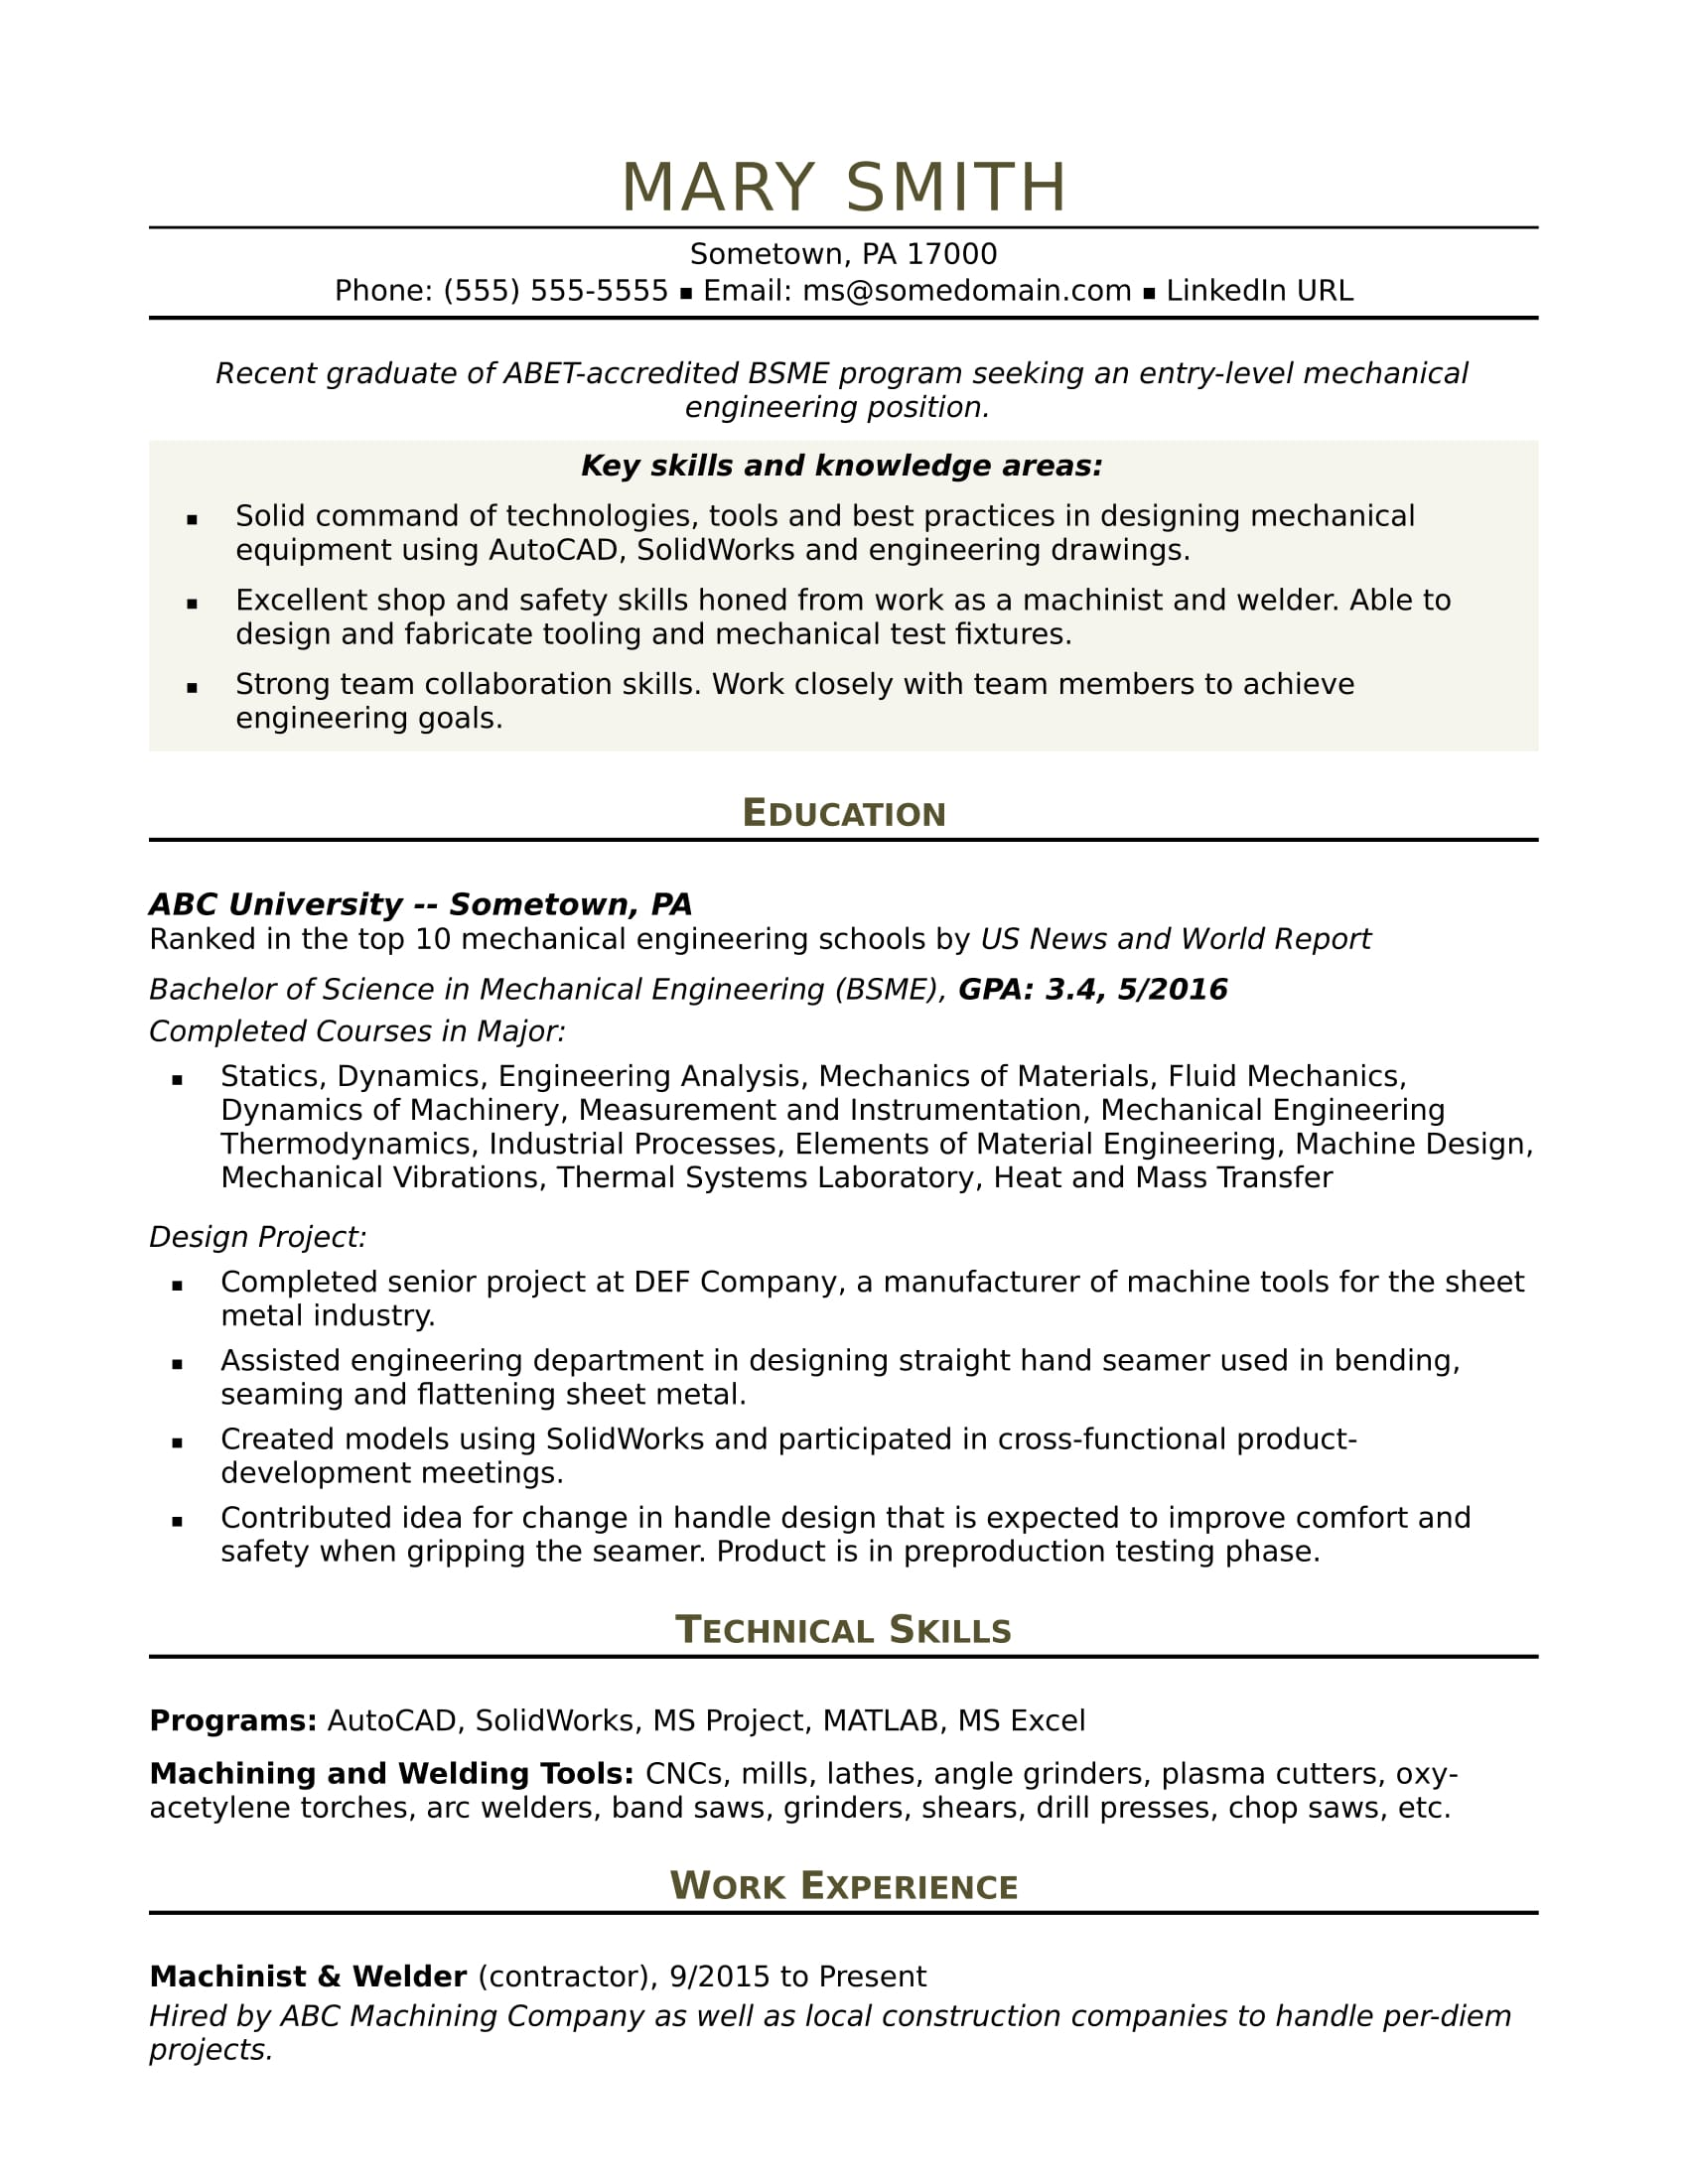 sample resume for an entry level mechanical engineer - Engineering Graduate Resume